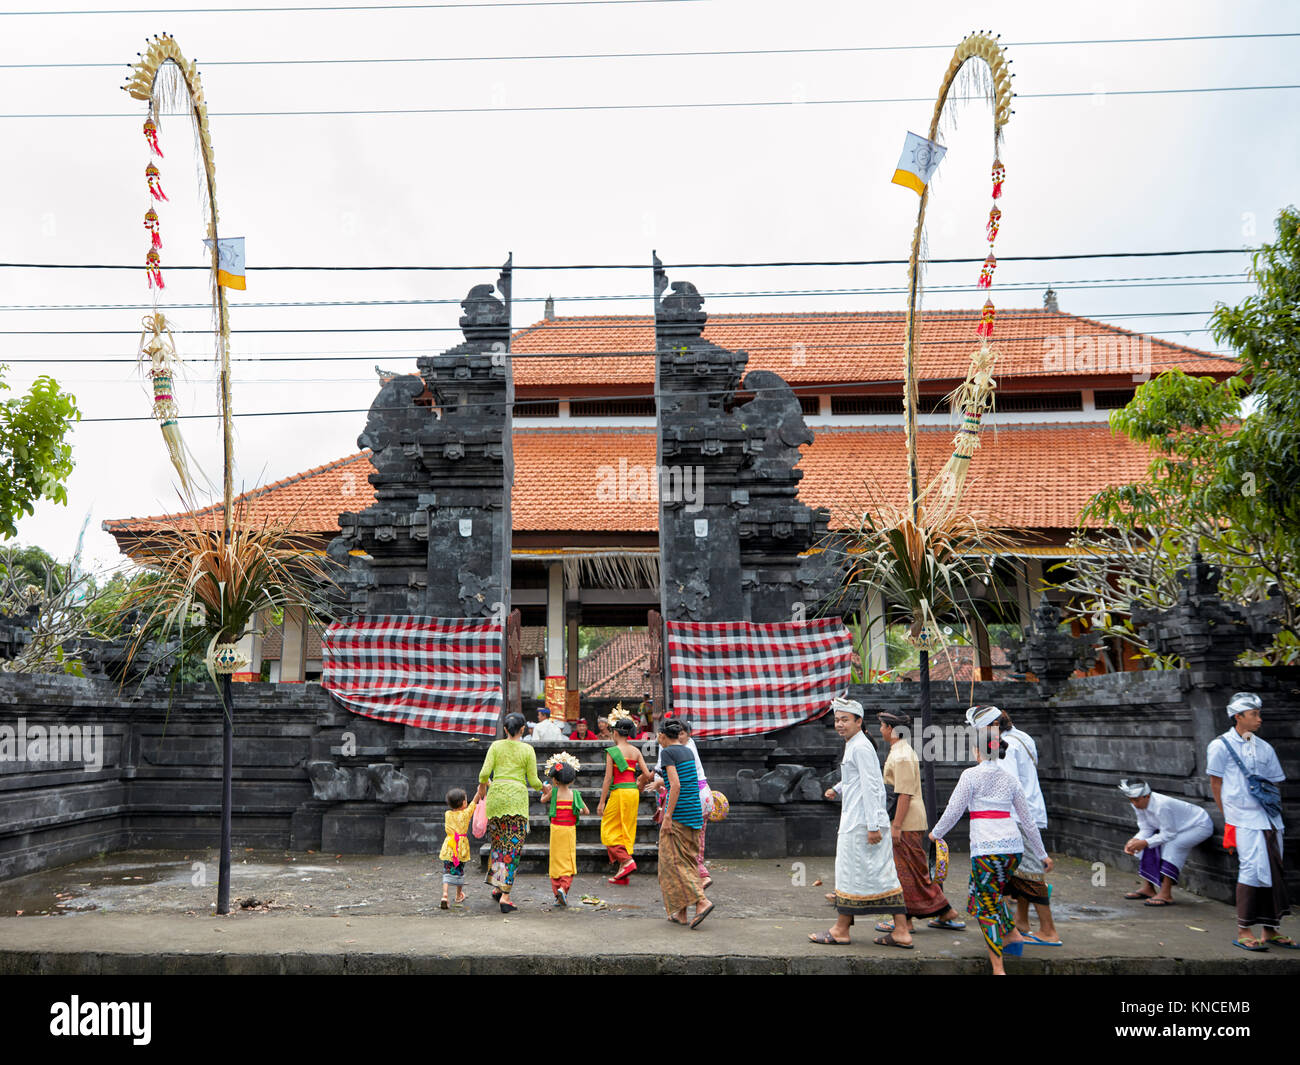 People wearing traditional Balinese clothing go to a local temple near Bugbug village. Karangasem Regency, Bali, - Stock Image